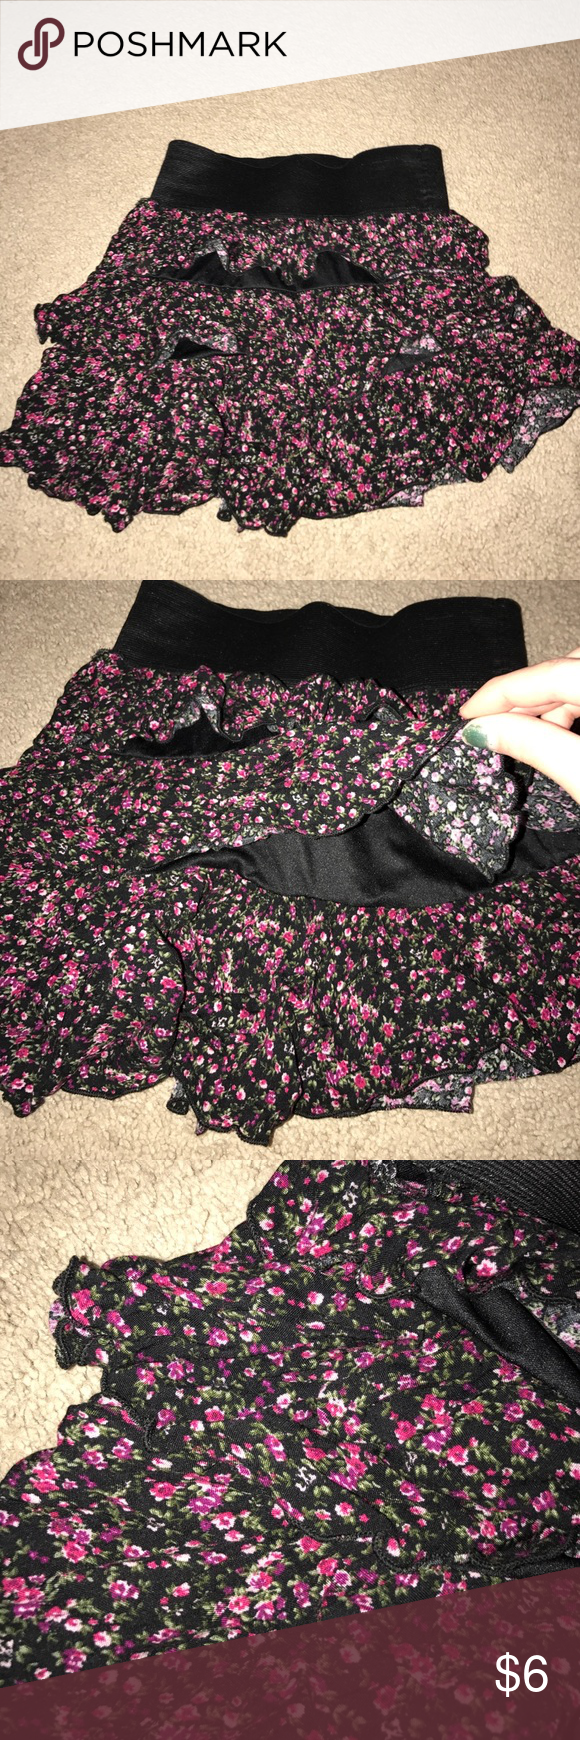 Ruffled floral patterned skirt Good condition Skirts Mini